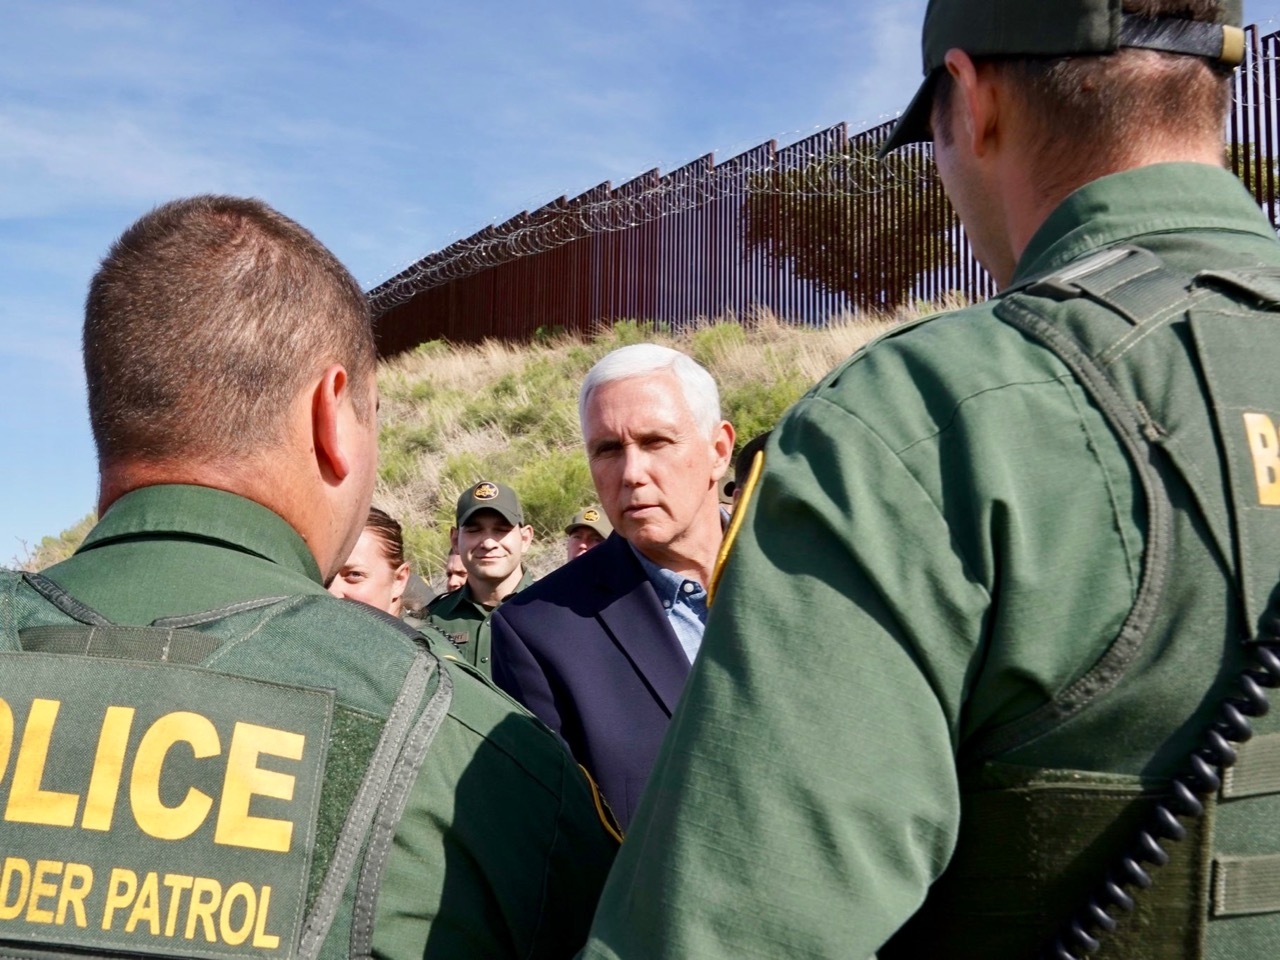 Cronkite News: Vice President Pence speaks of 'crisis' at U.S. border